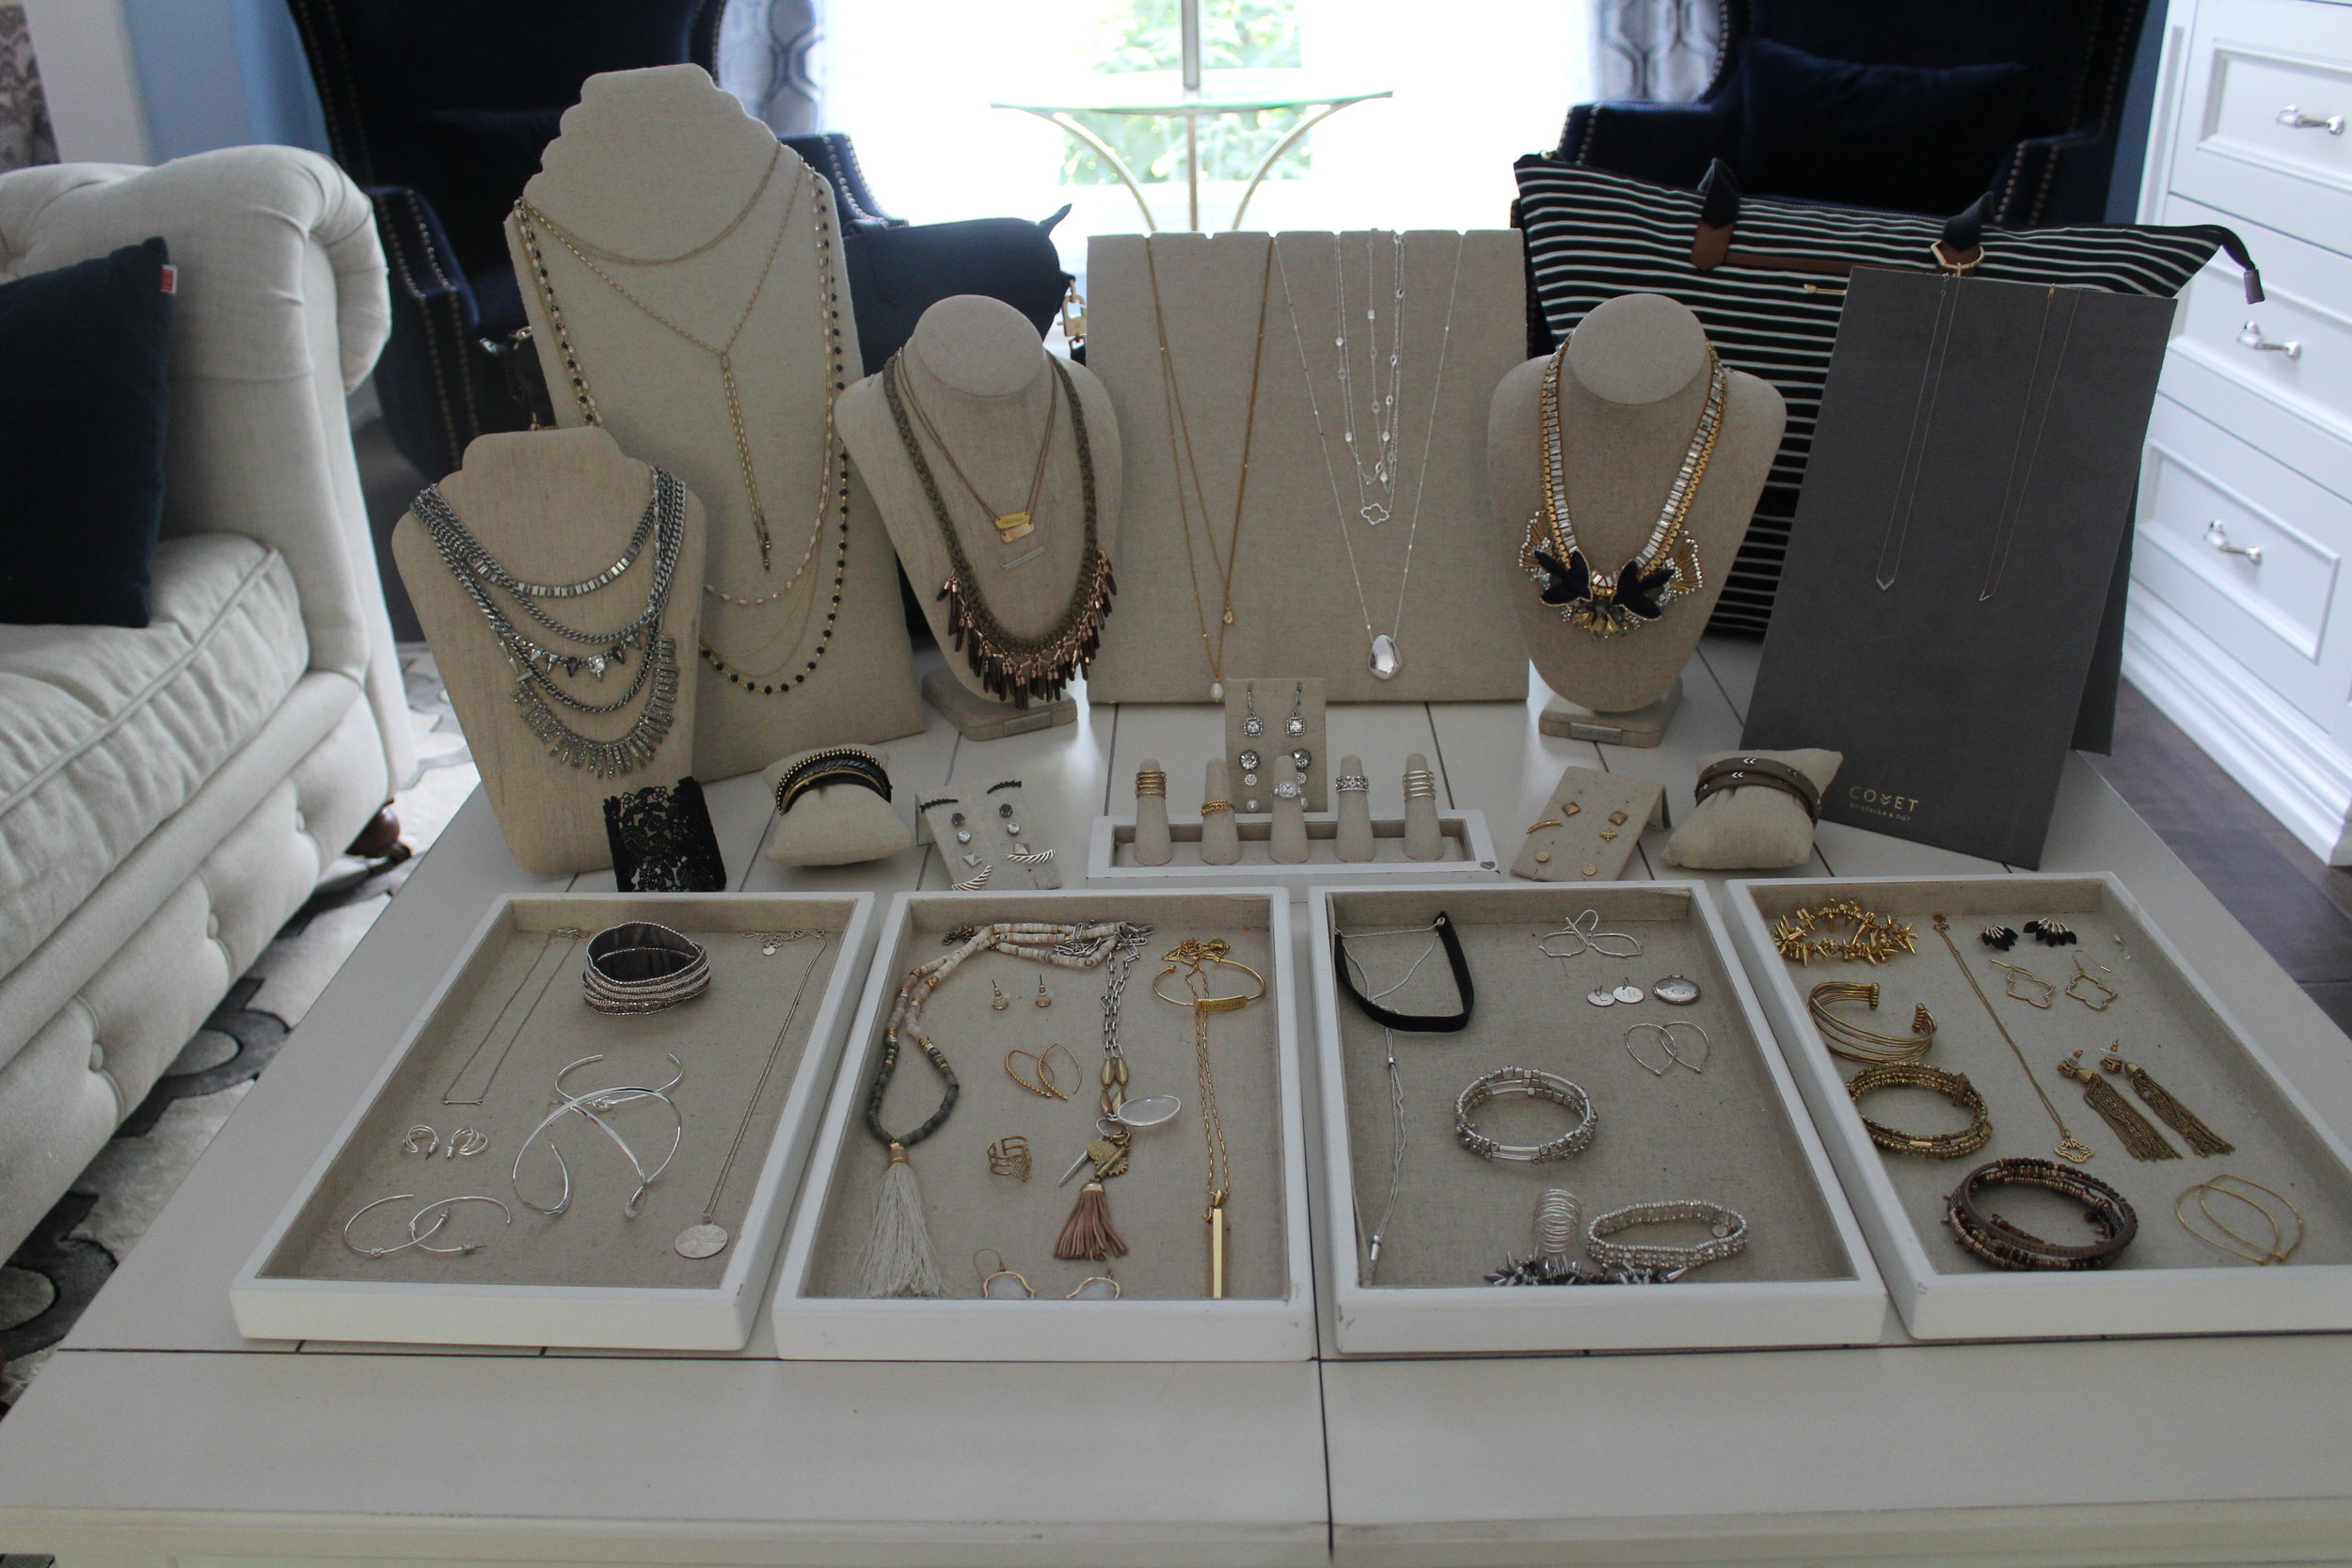 This is only a fraction of what's actually available online, but I was lucky enough to get to play dress up with all this jewelry and accessories for a day!